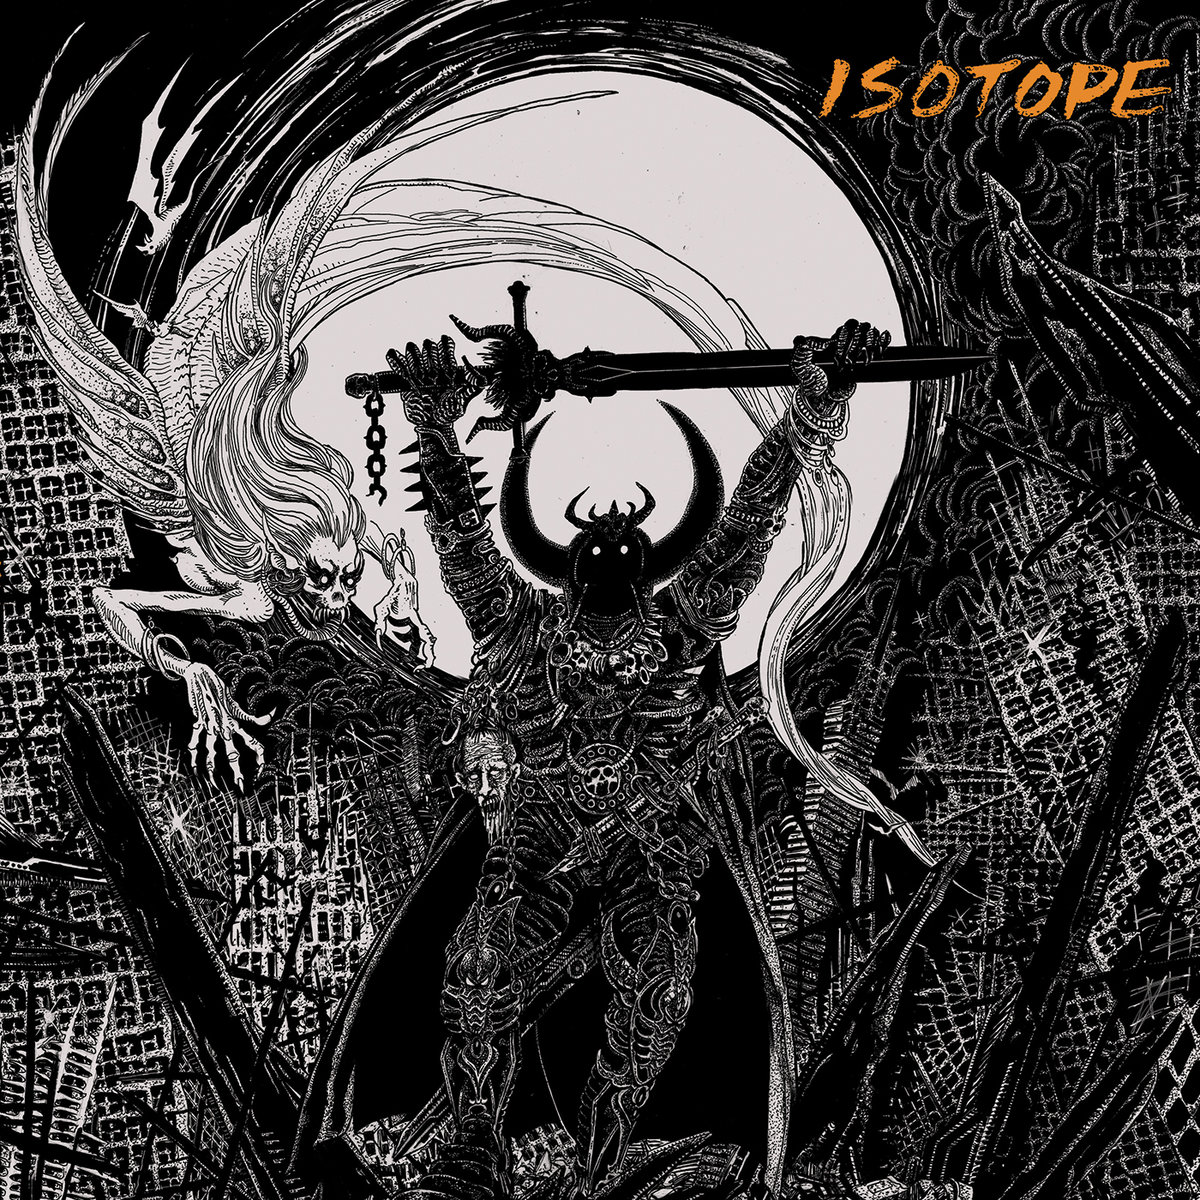 ISOTOPE: Bay Area Hardcore Punk Unit ISOTOPE To Release Debut Full-Length Via Carbonized Records